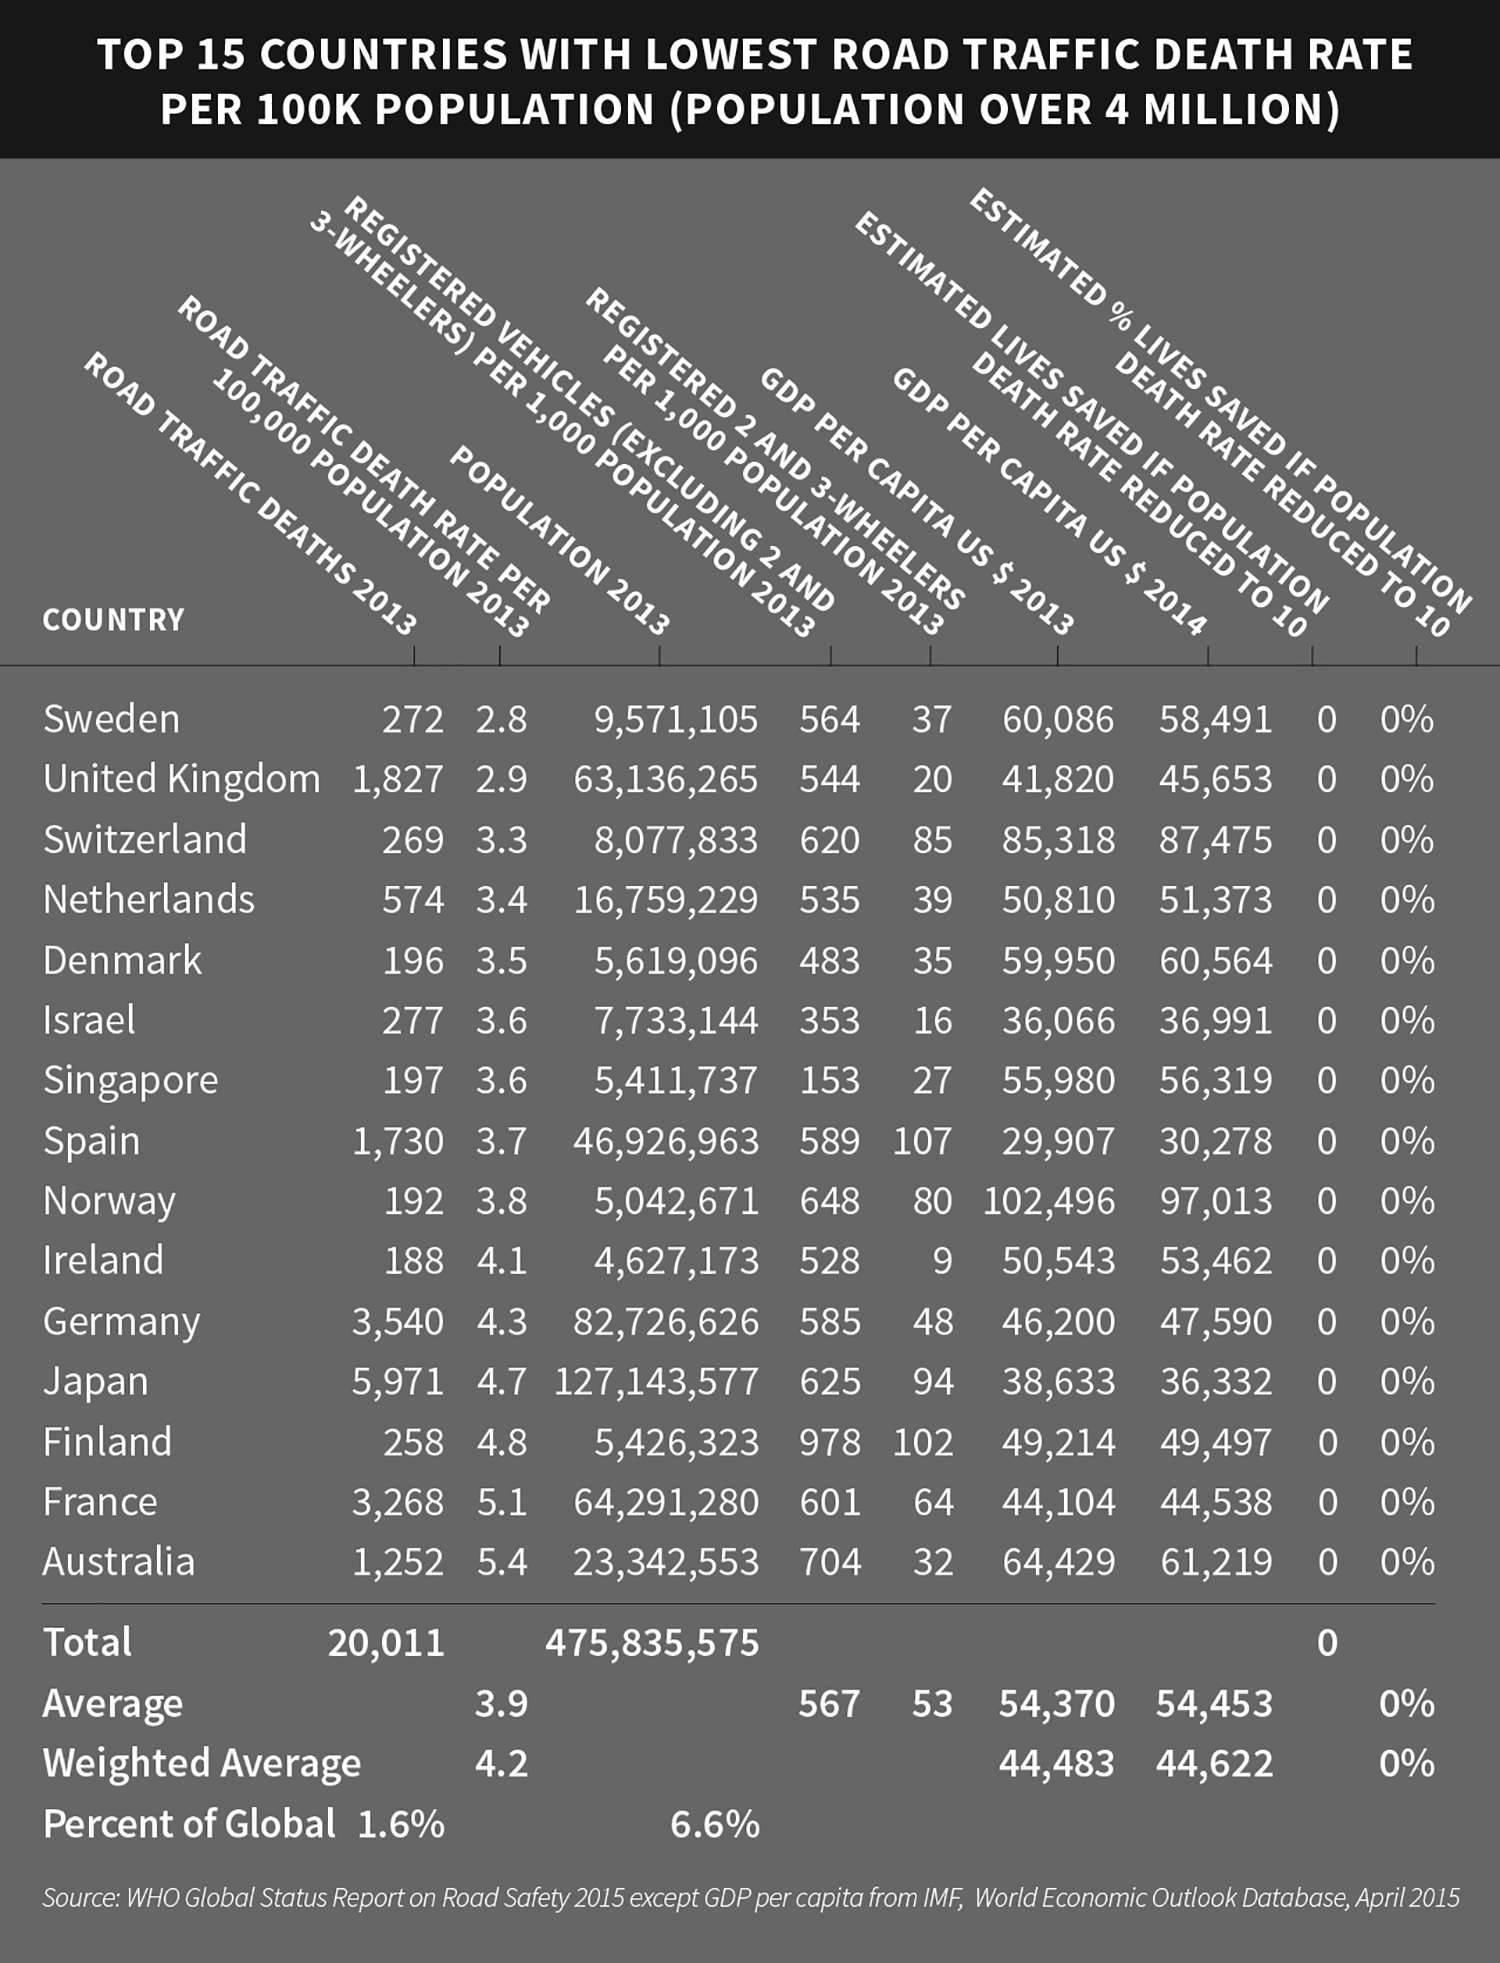 Table 3. THE TOP 15 LOW- AND MIDDLE-INCOME COUNTRIES WITH THE LOWEST ROAD TRAFFIC DEATH RATE PER 100,000 POPULATION (POPULATION OVER 4 MILLION).